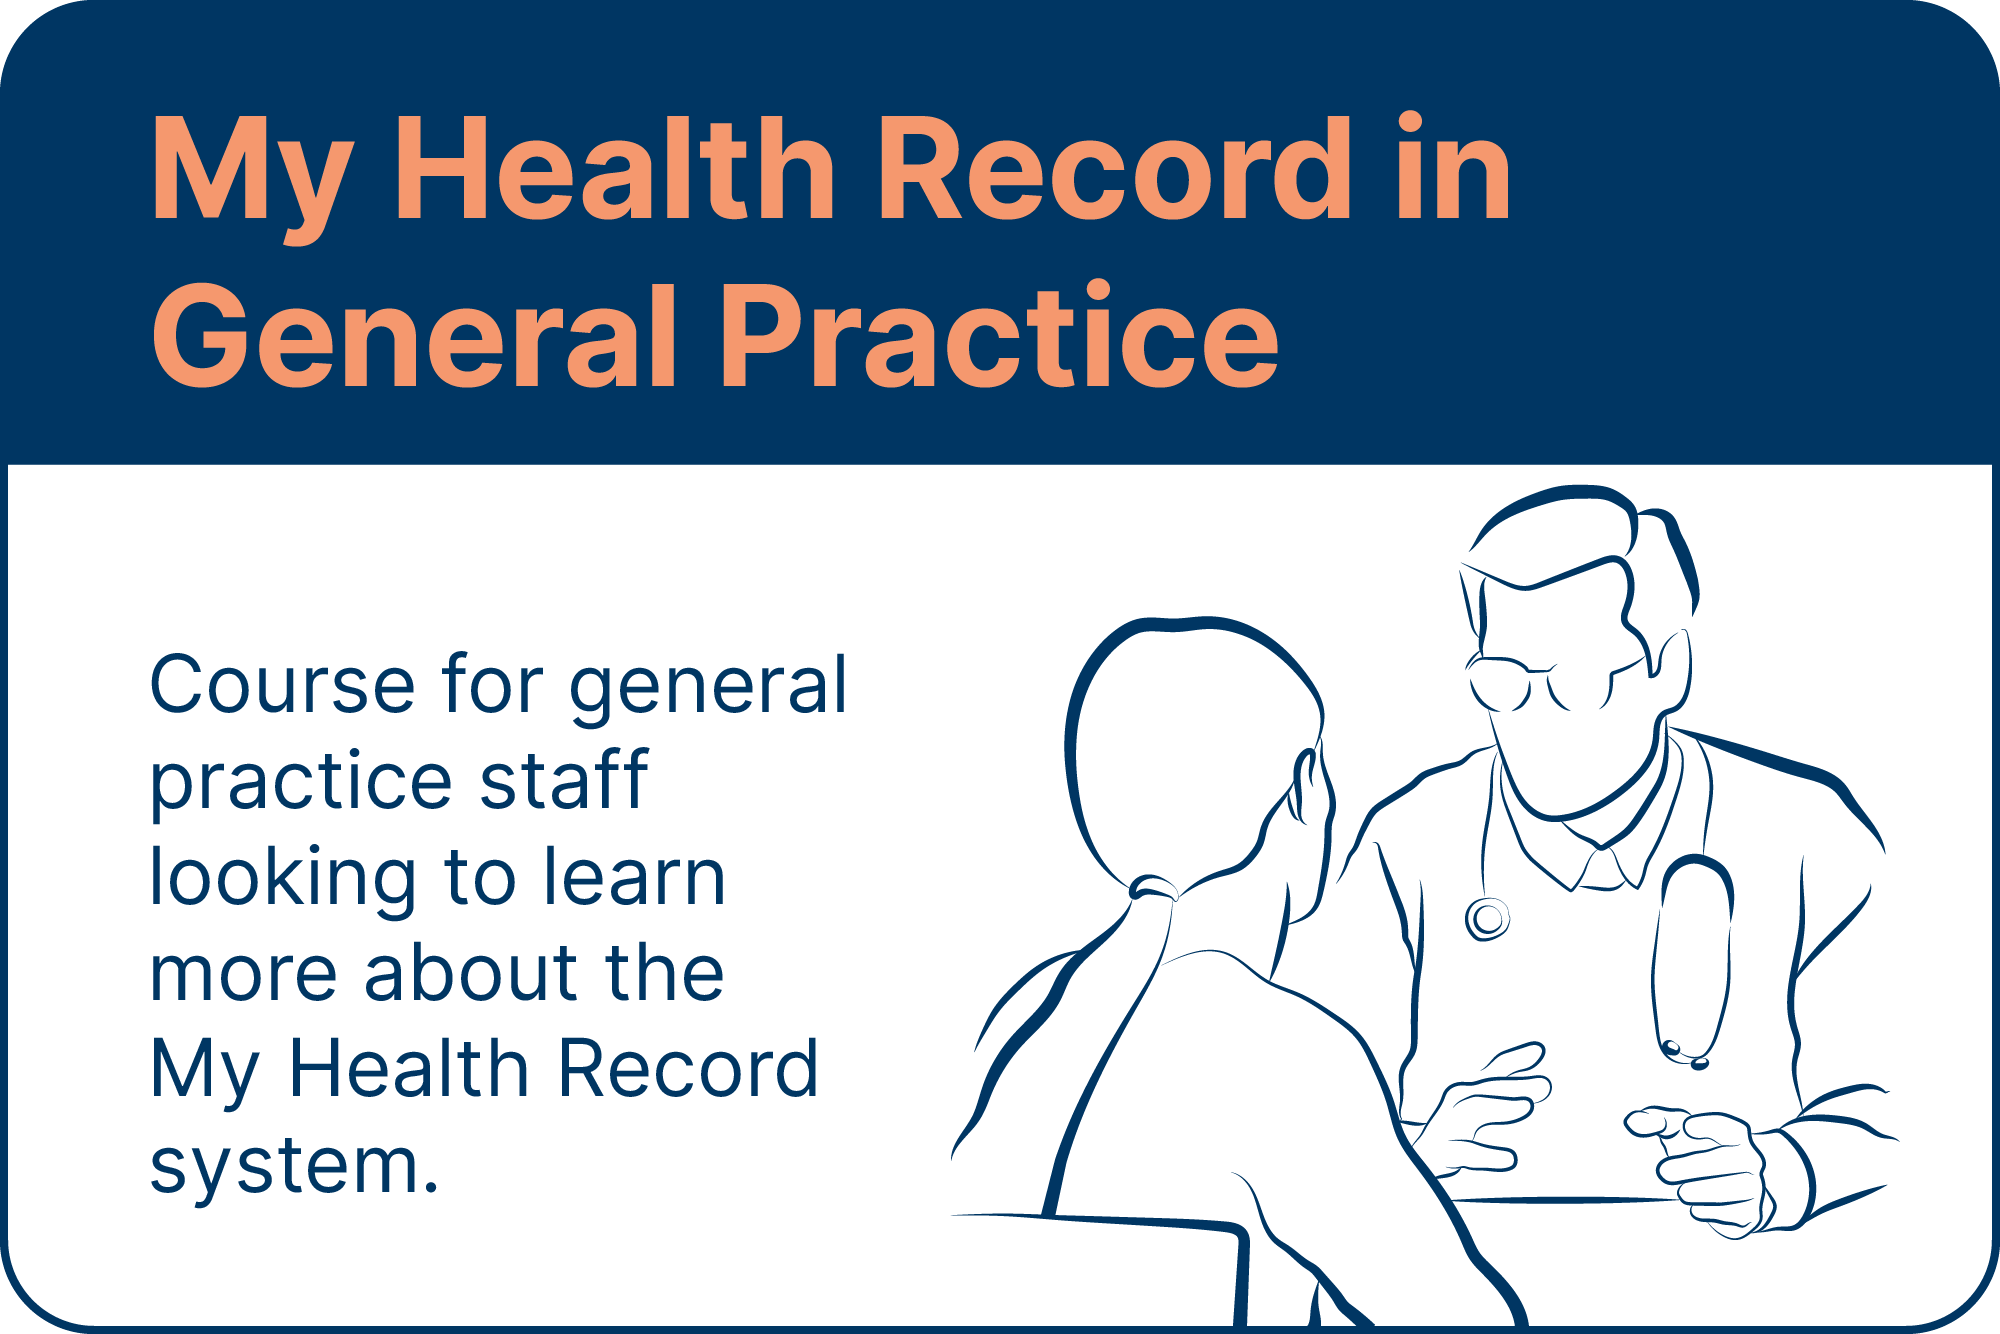 My Health Record in General Practice